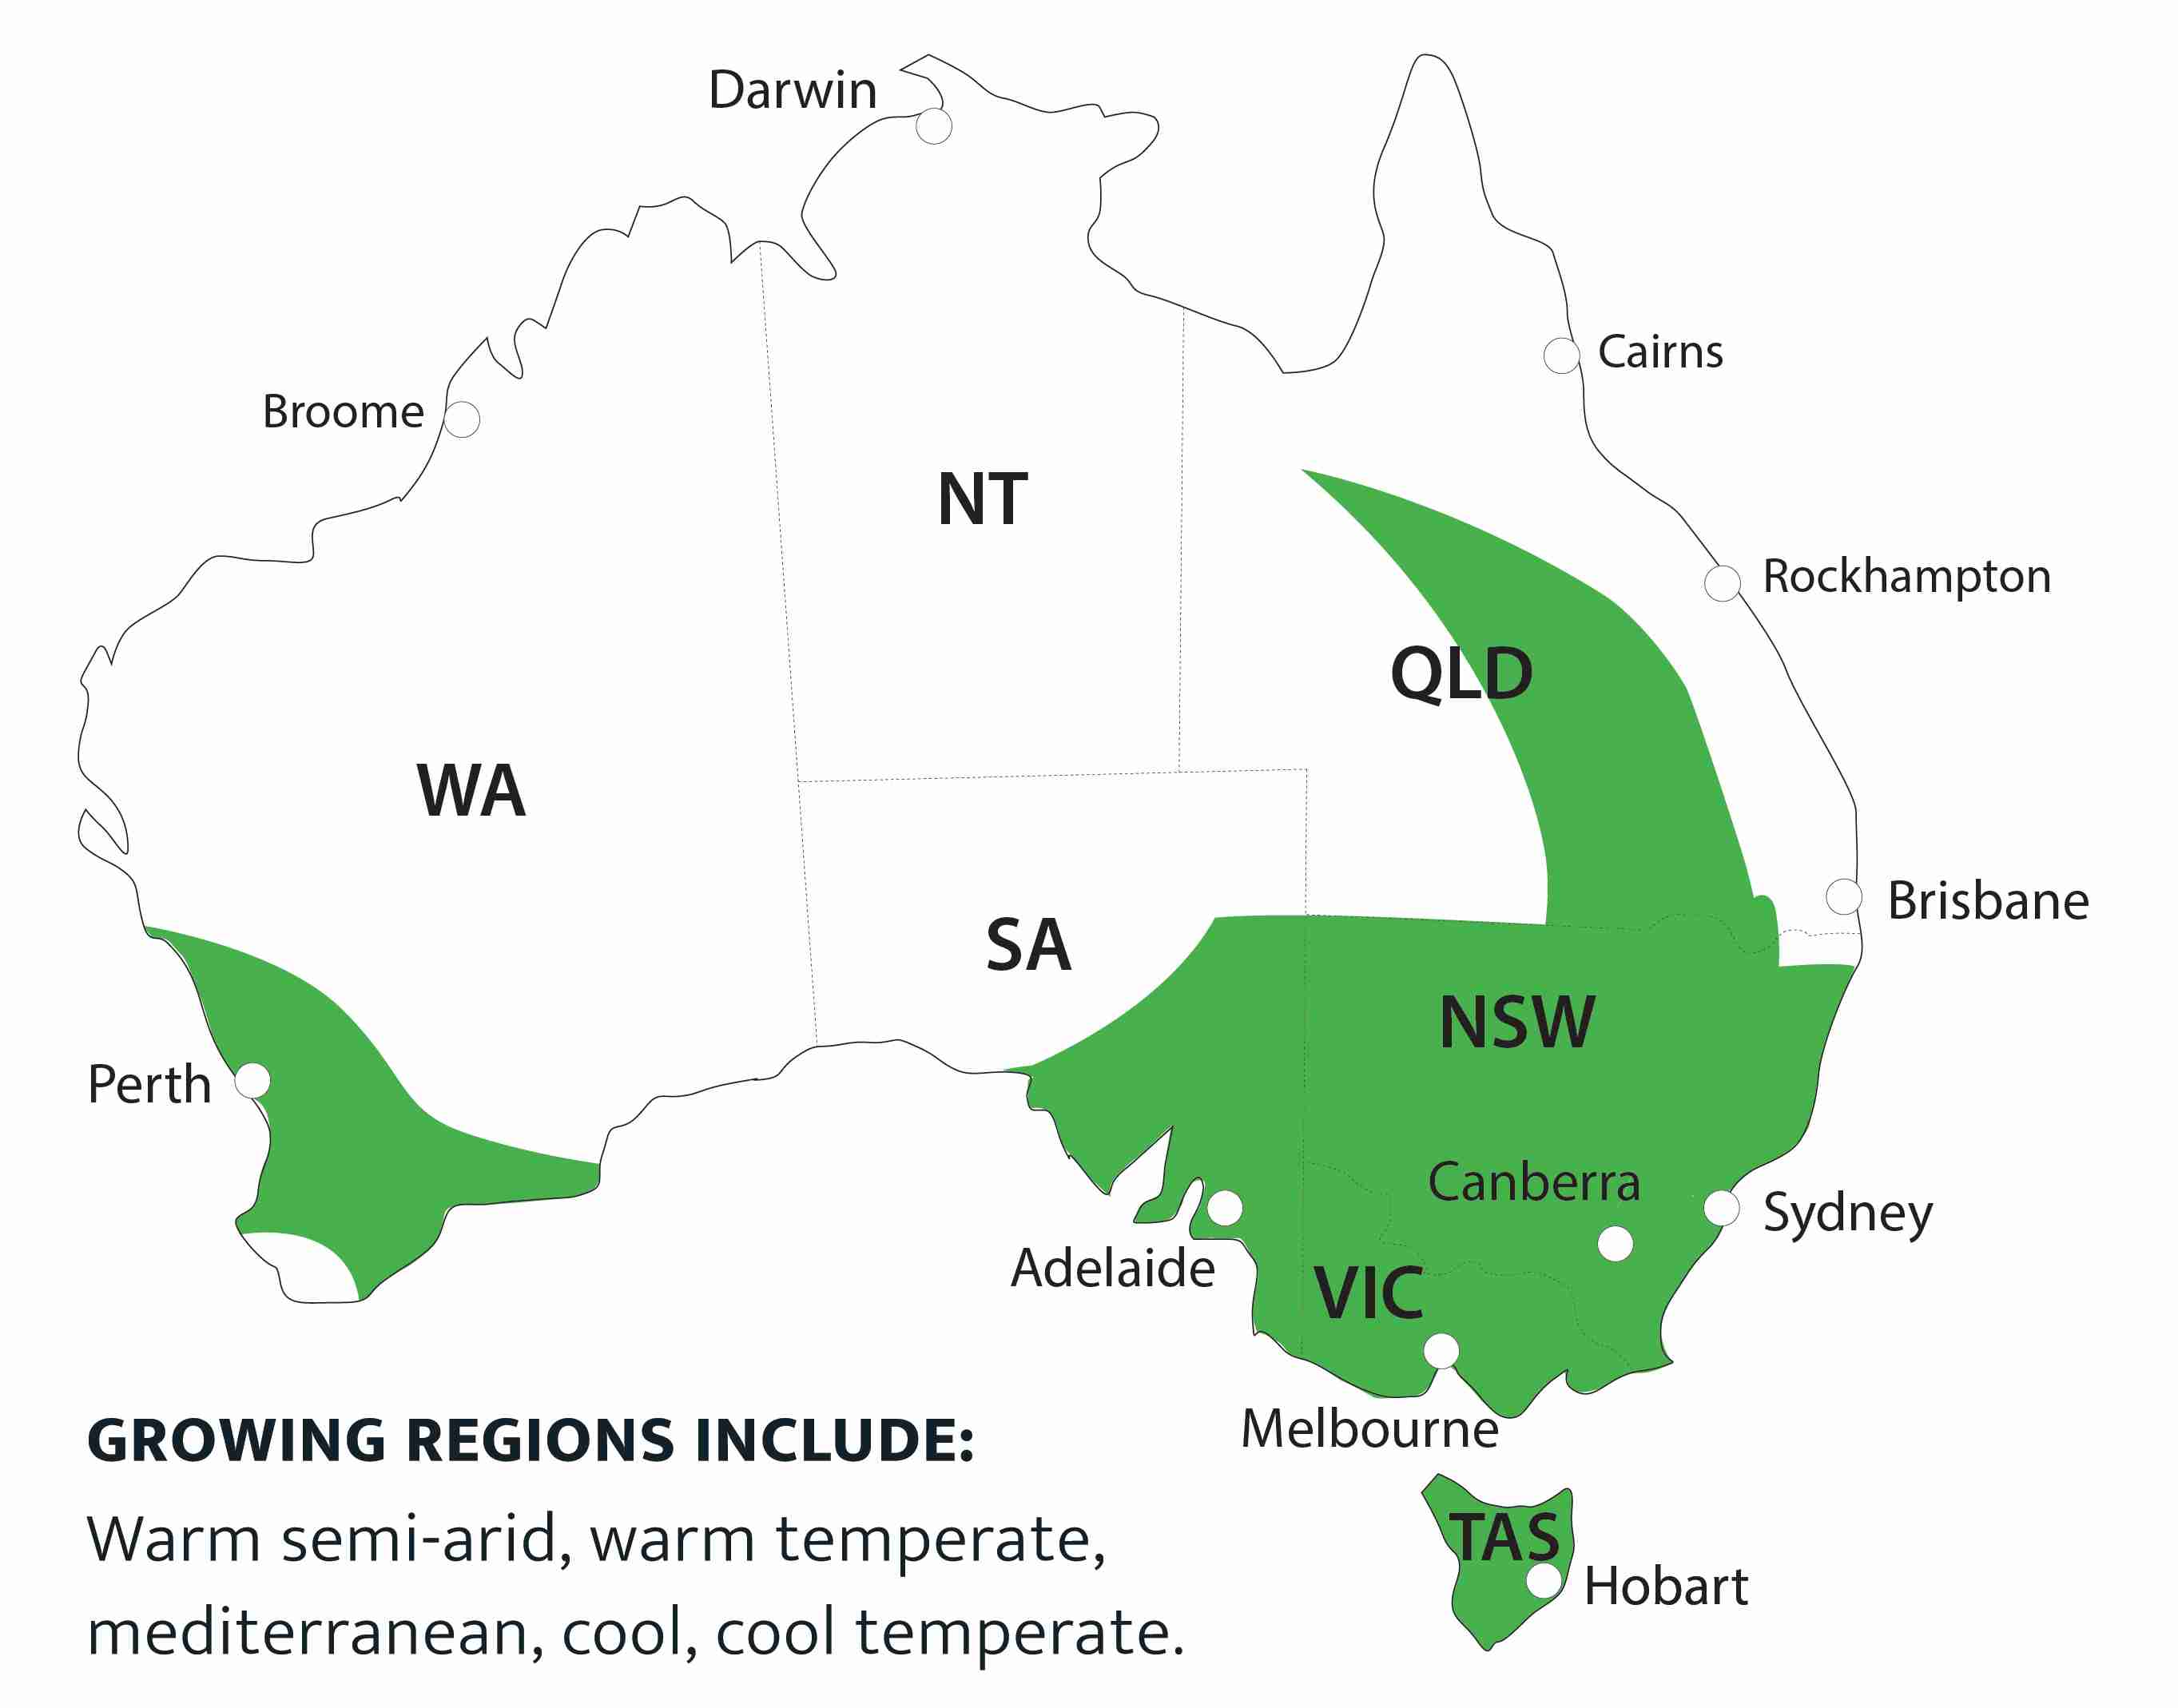 Map of suitable areas for growing.